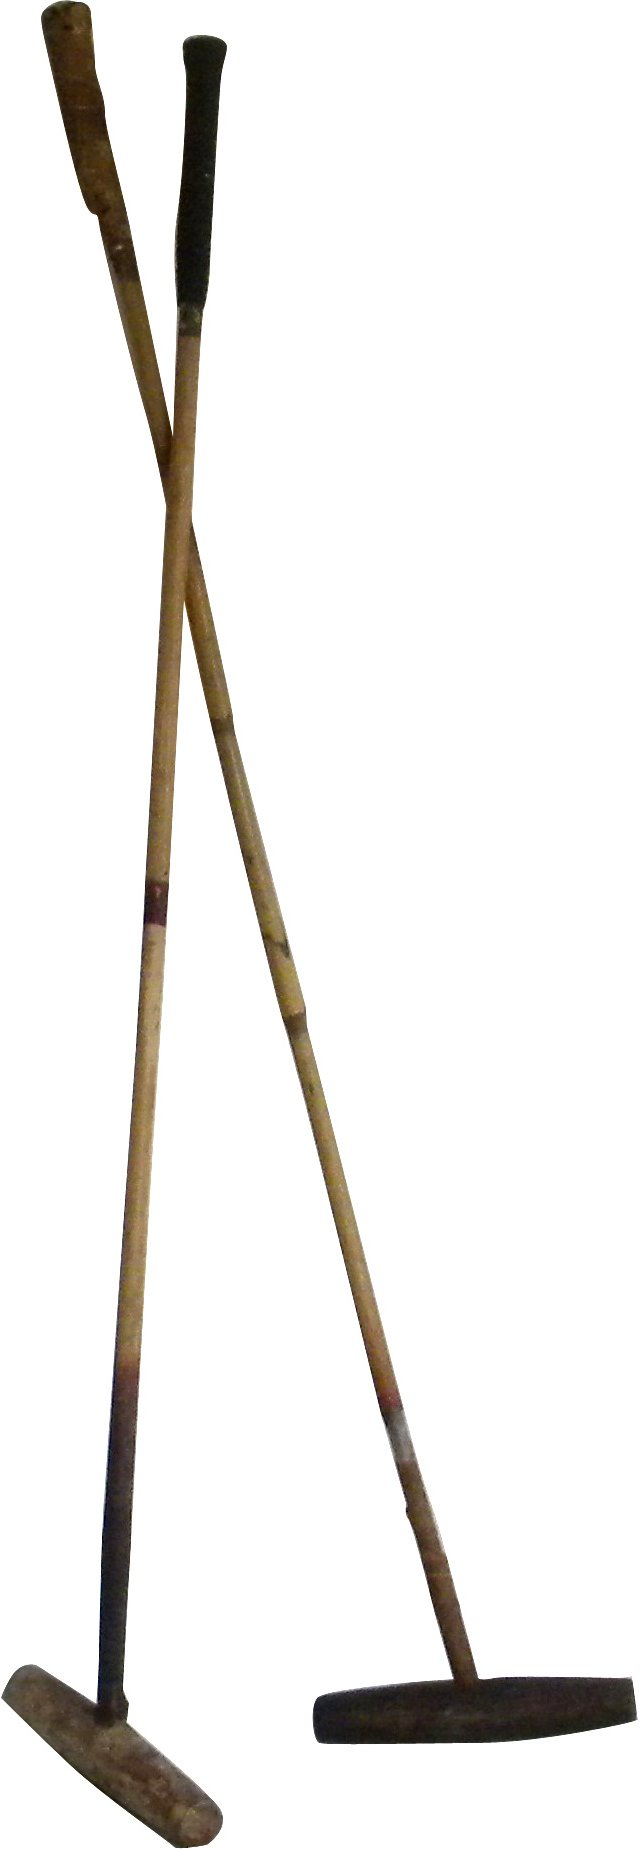 Polo Mallets, Pair